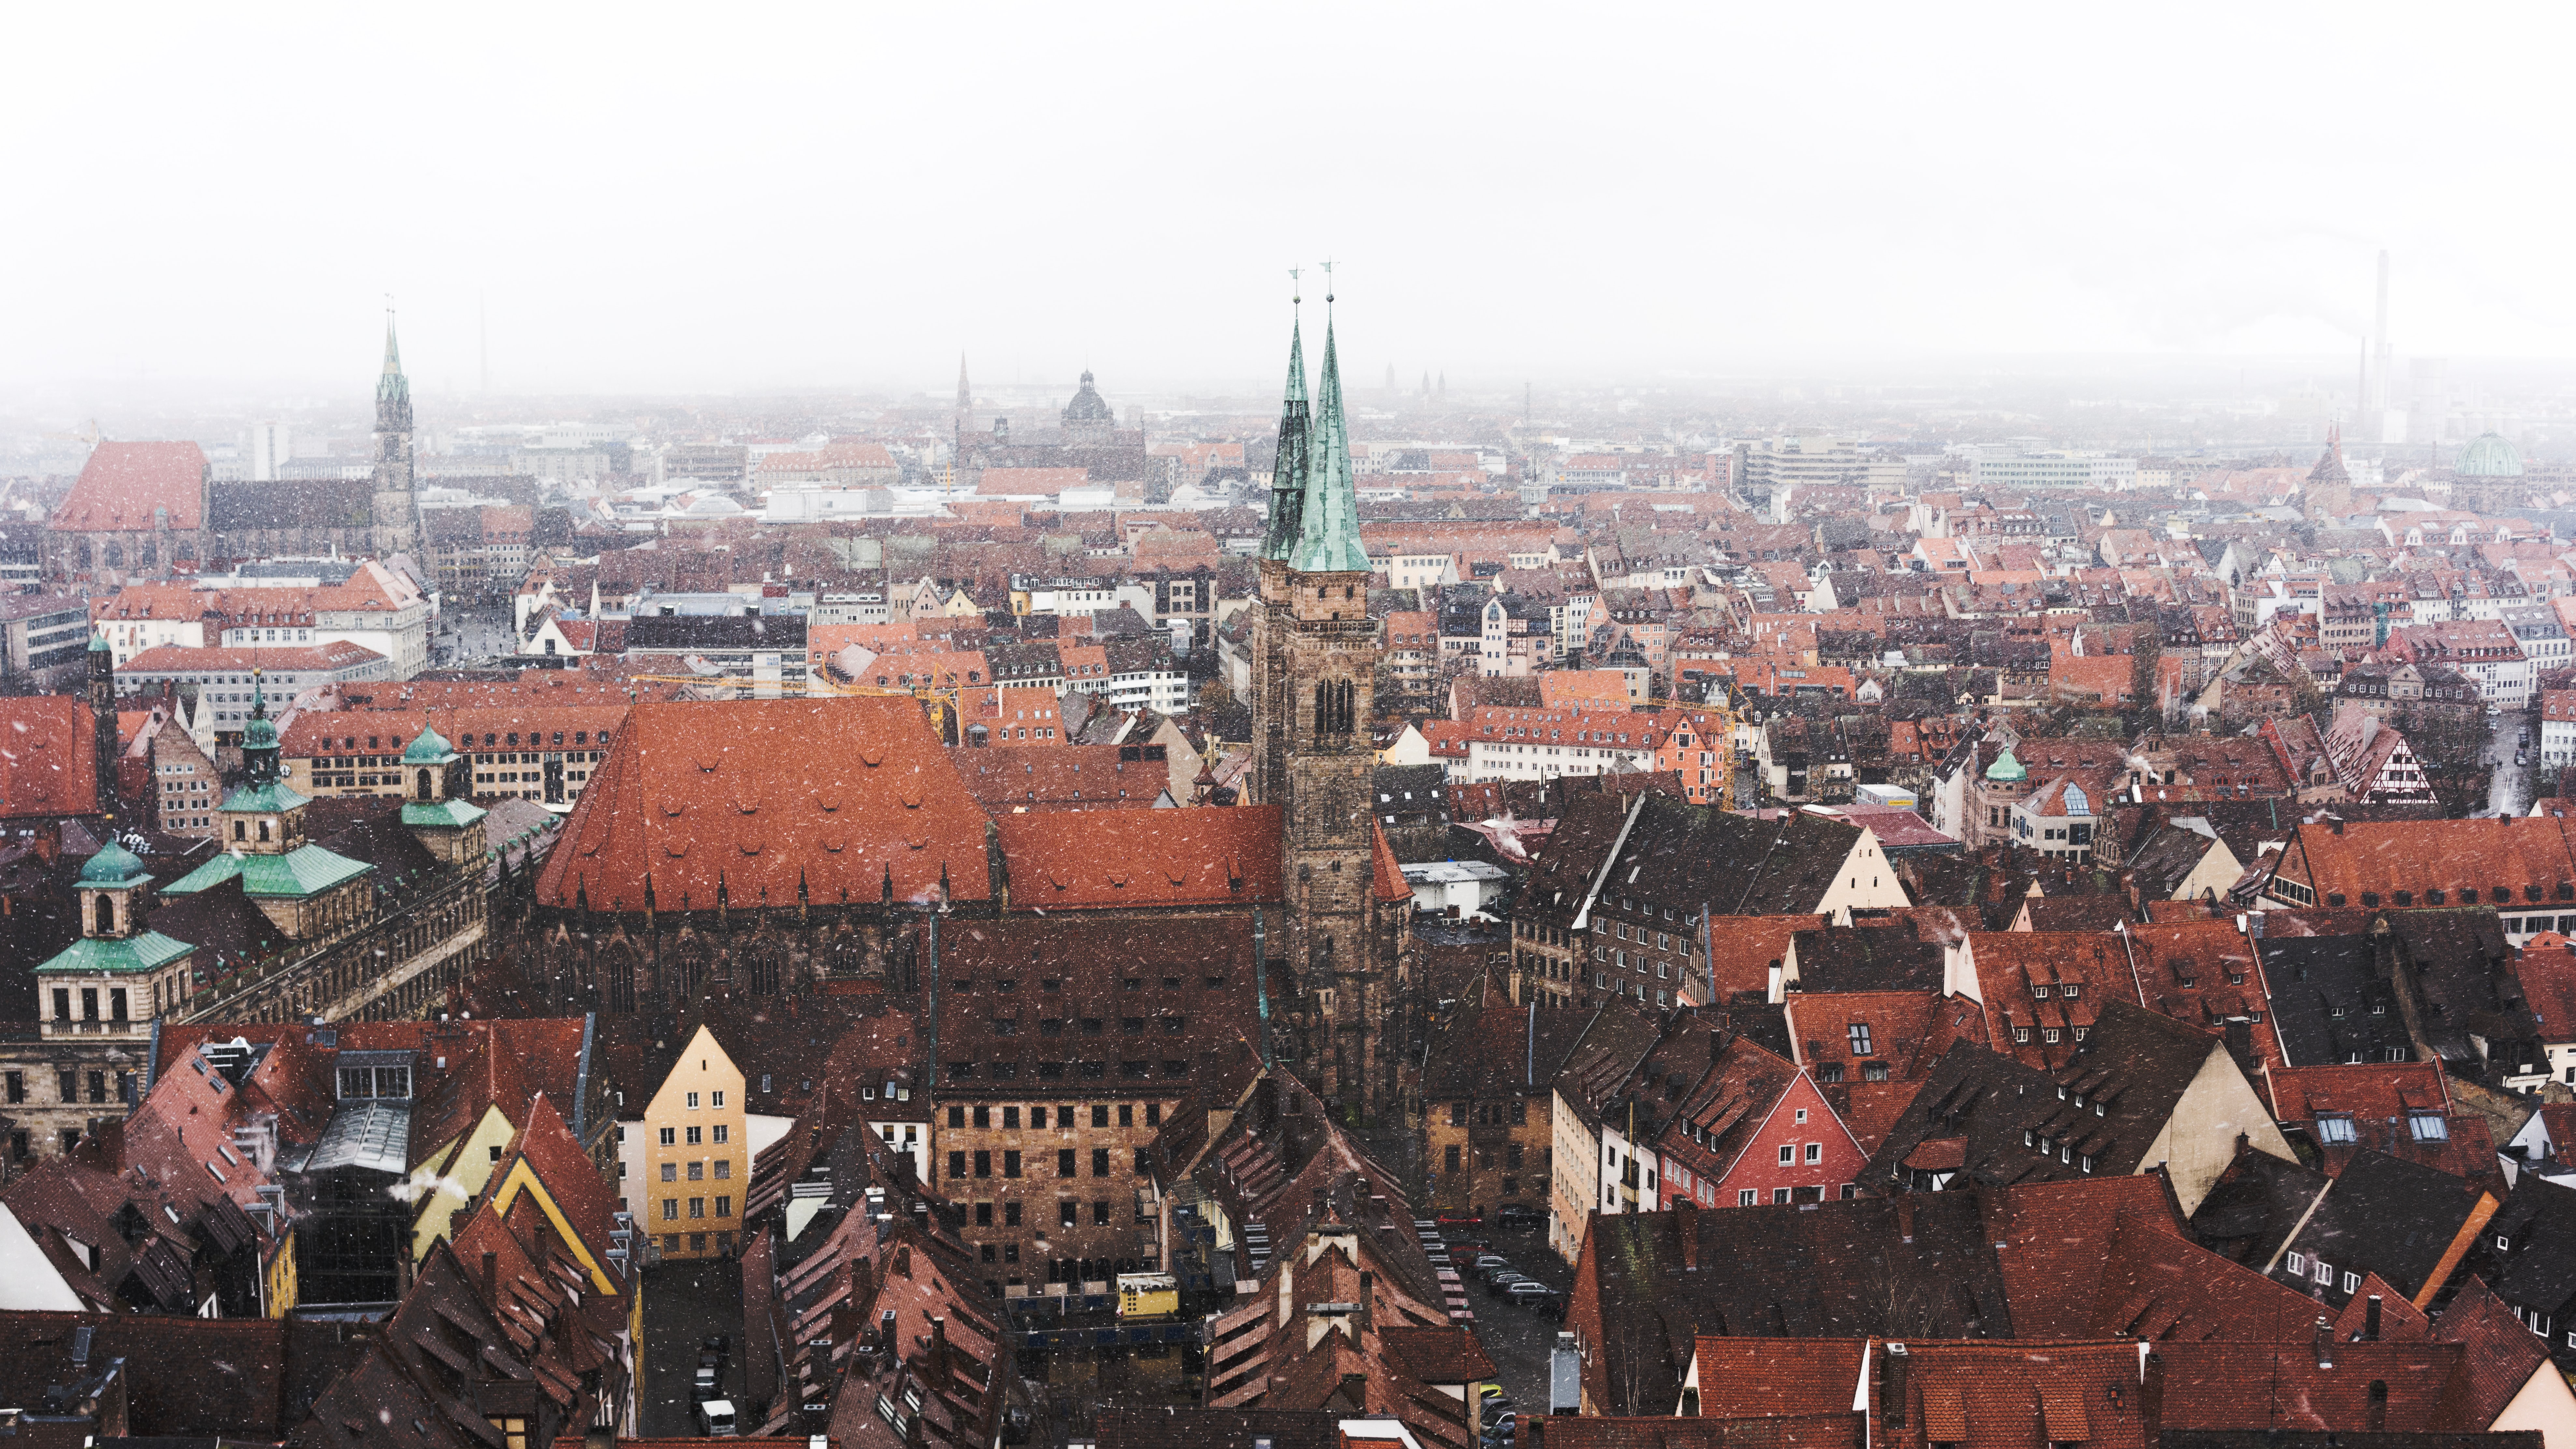 Snow falling on the city of Nuremberg, Germany; image by Kadir Celep, via Unsplash.com.